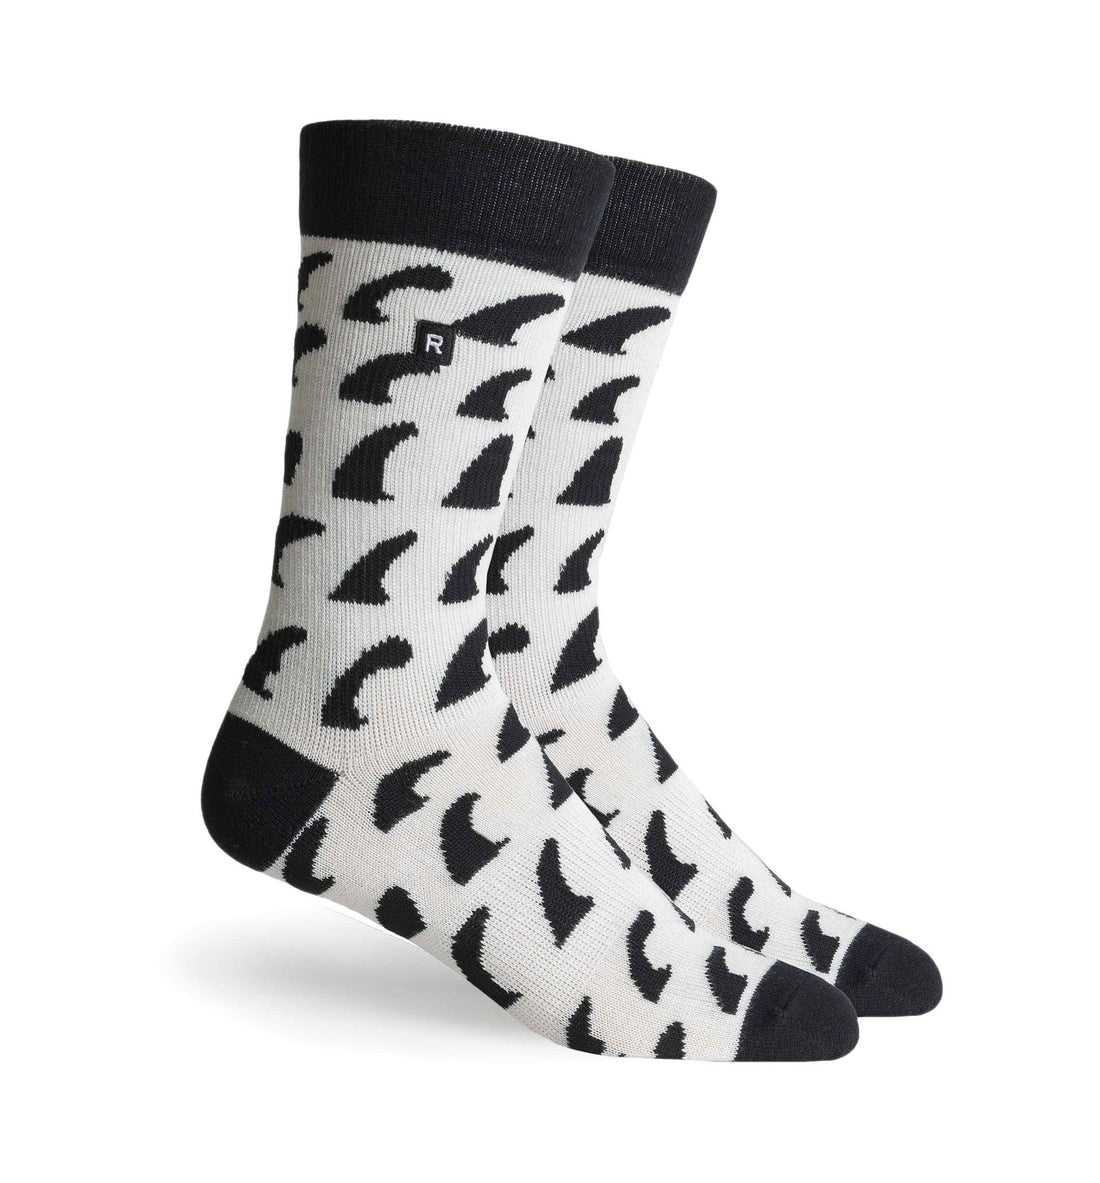 Richer Poorer Inc Fins Sock - White Black - Socks/Underwear - Iron and Resin